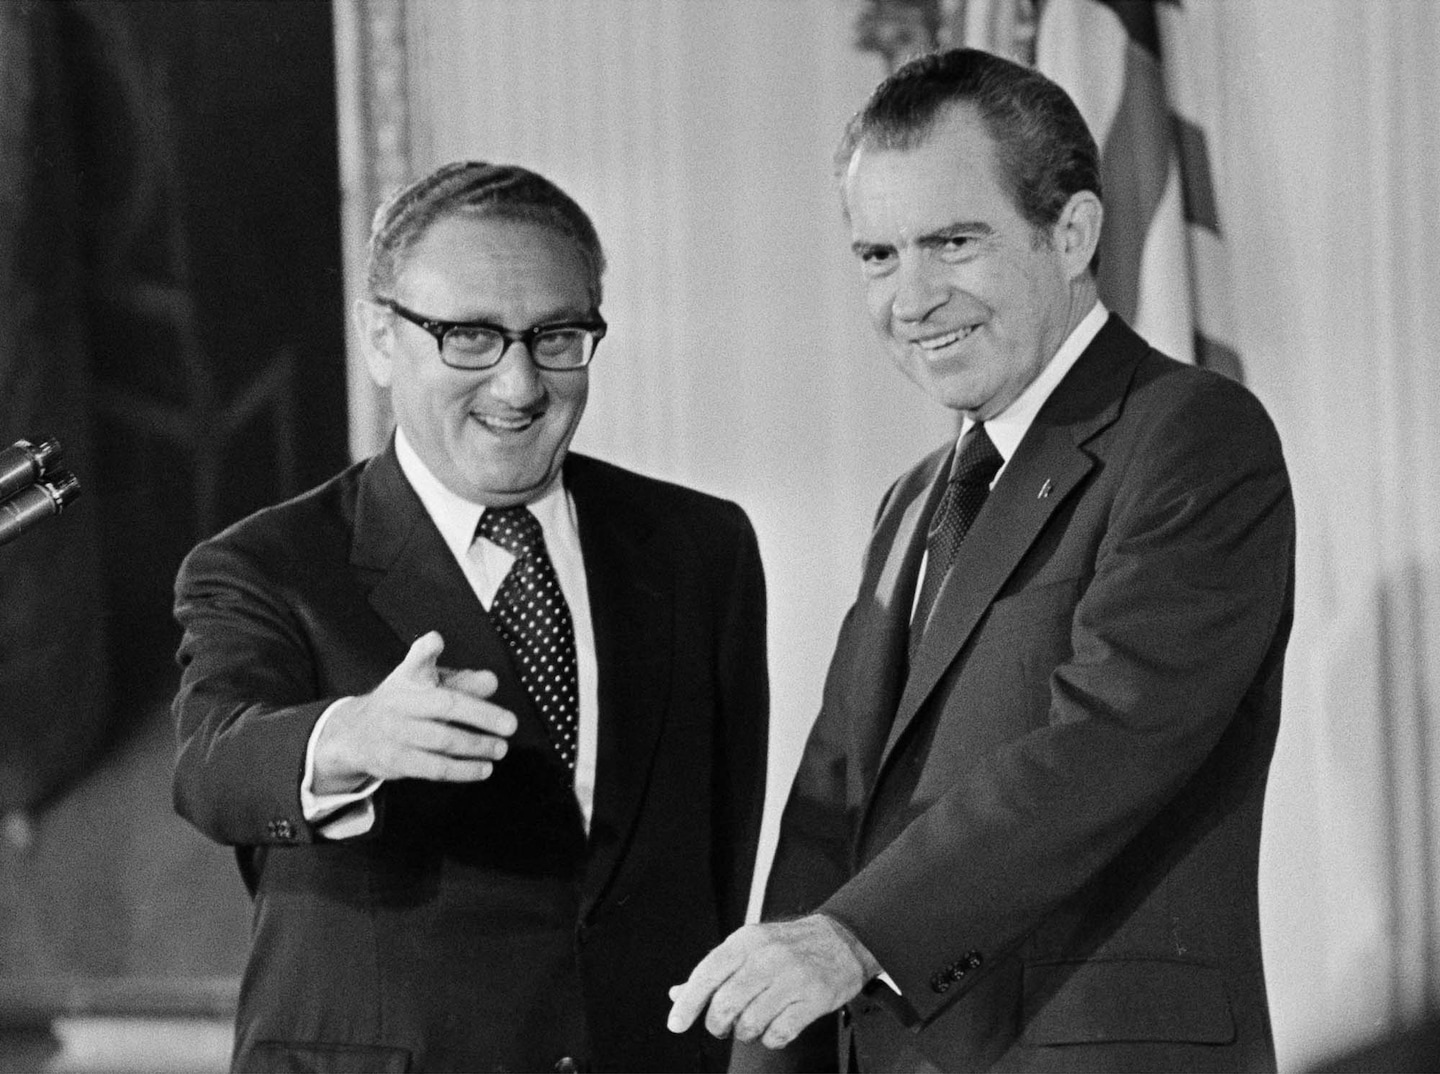 Book review of The Greek Connection: The Life of Elias Demetracopoulos and the Untold Story of Watergate by James H. Barron